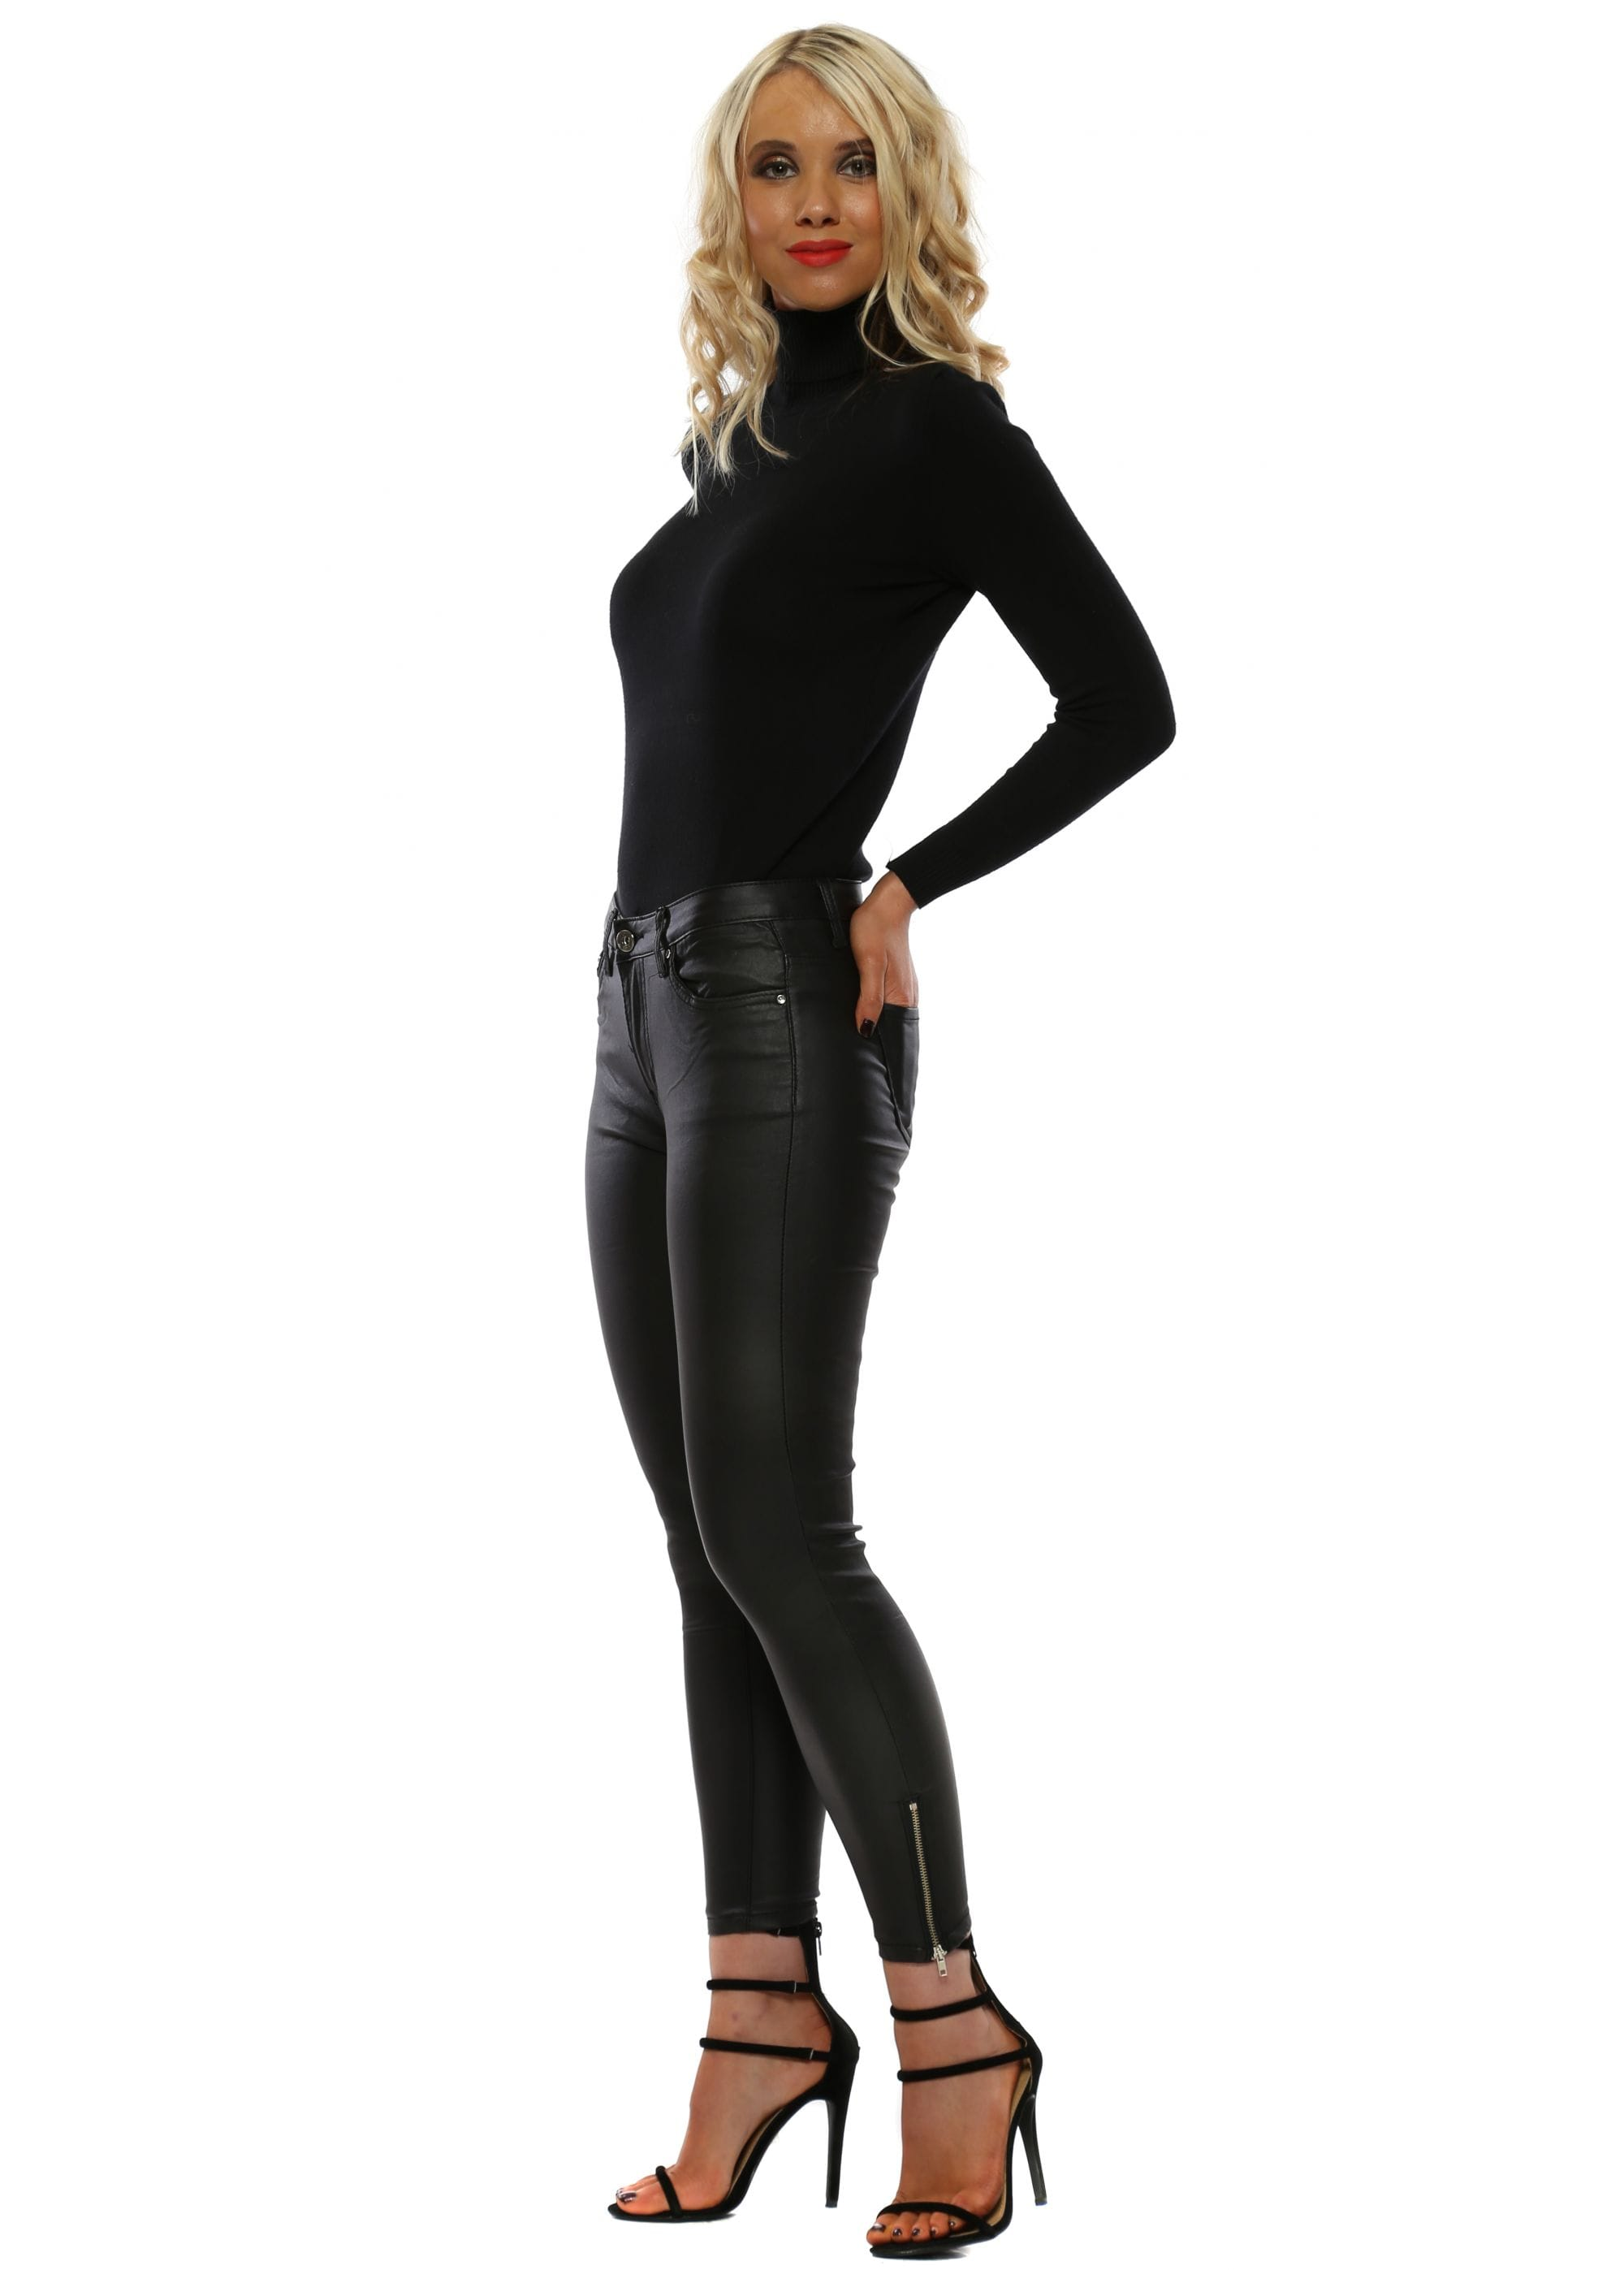 d63b70943c35c High Waisted Black Leather Jeans - Ladies Black Jeans